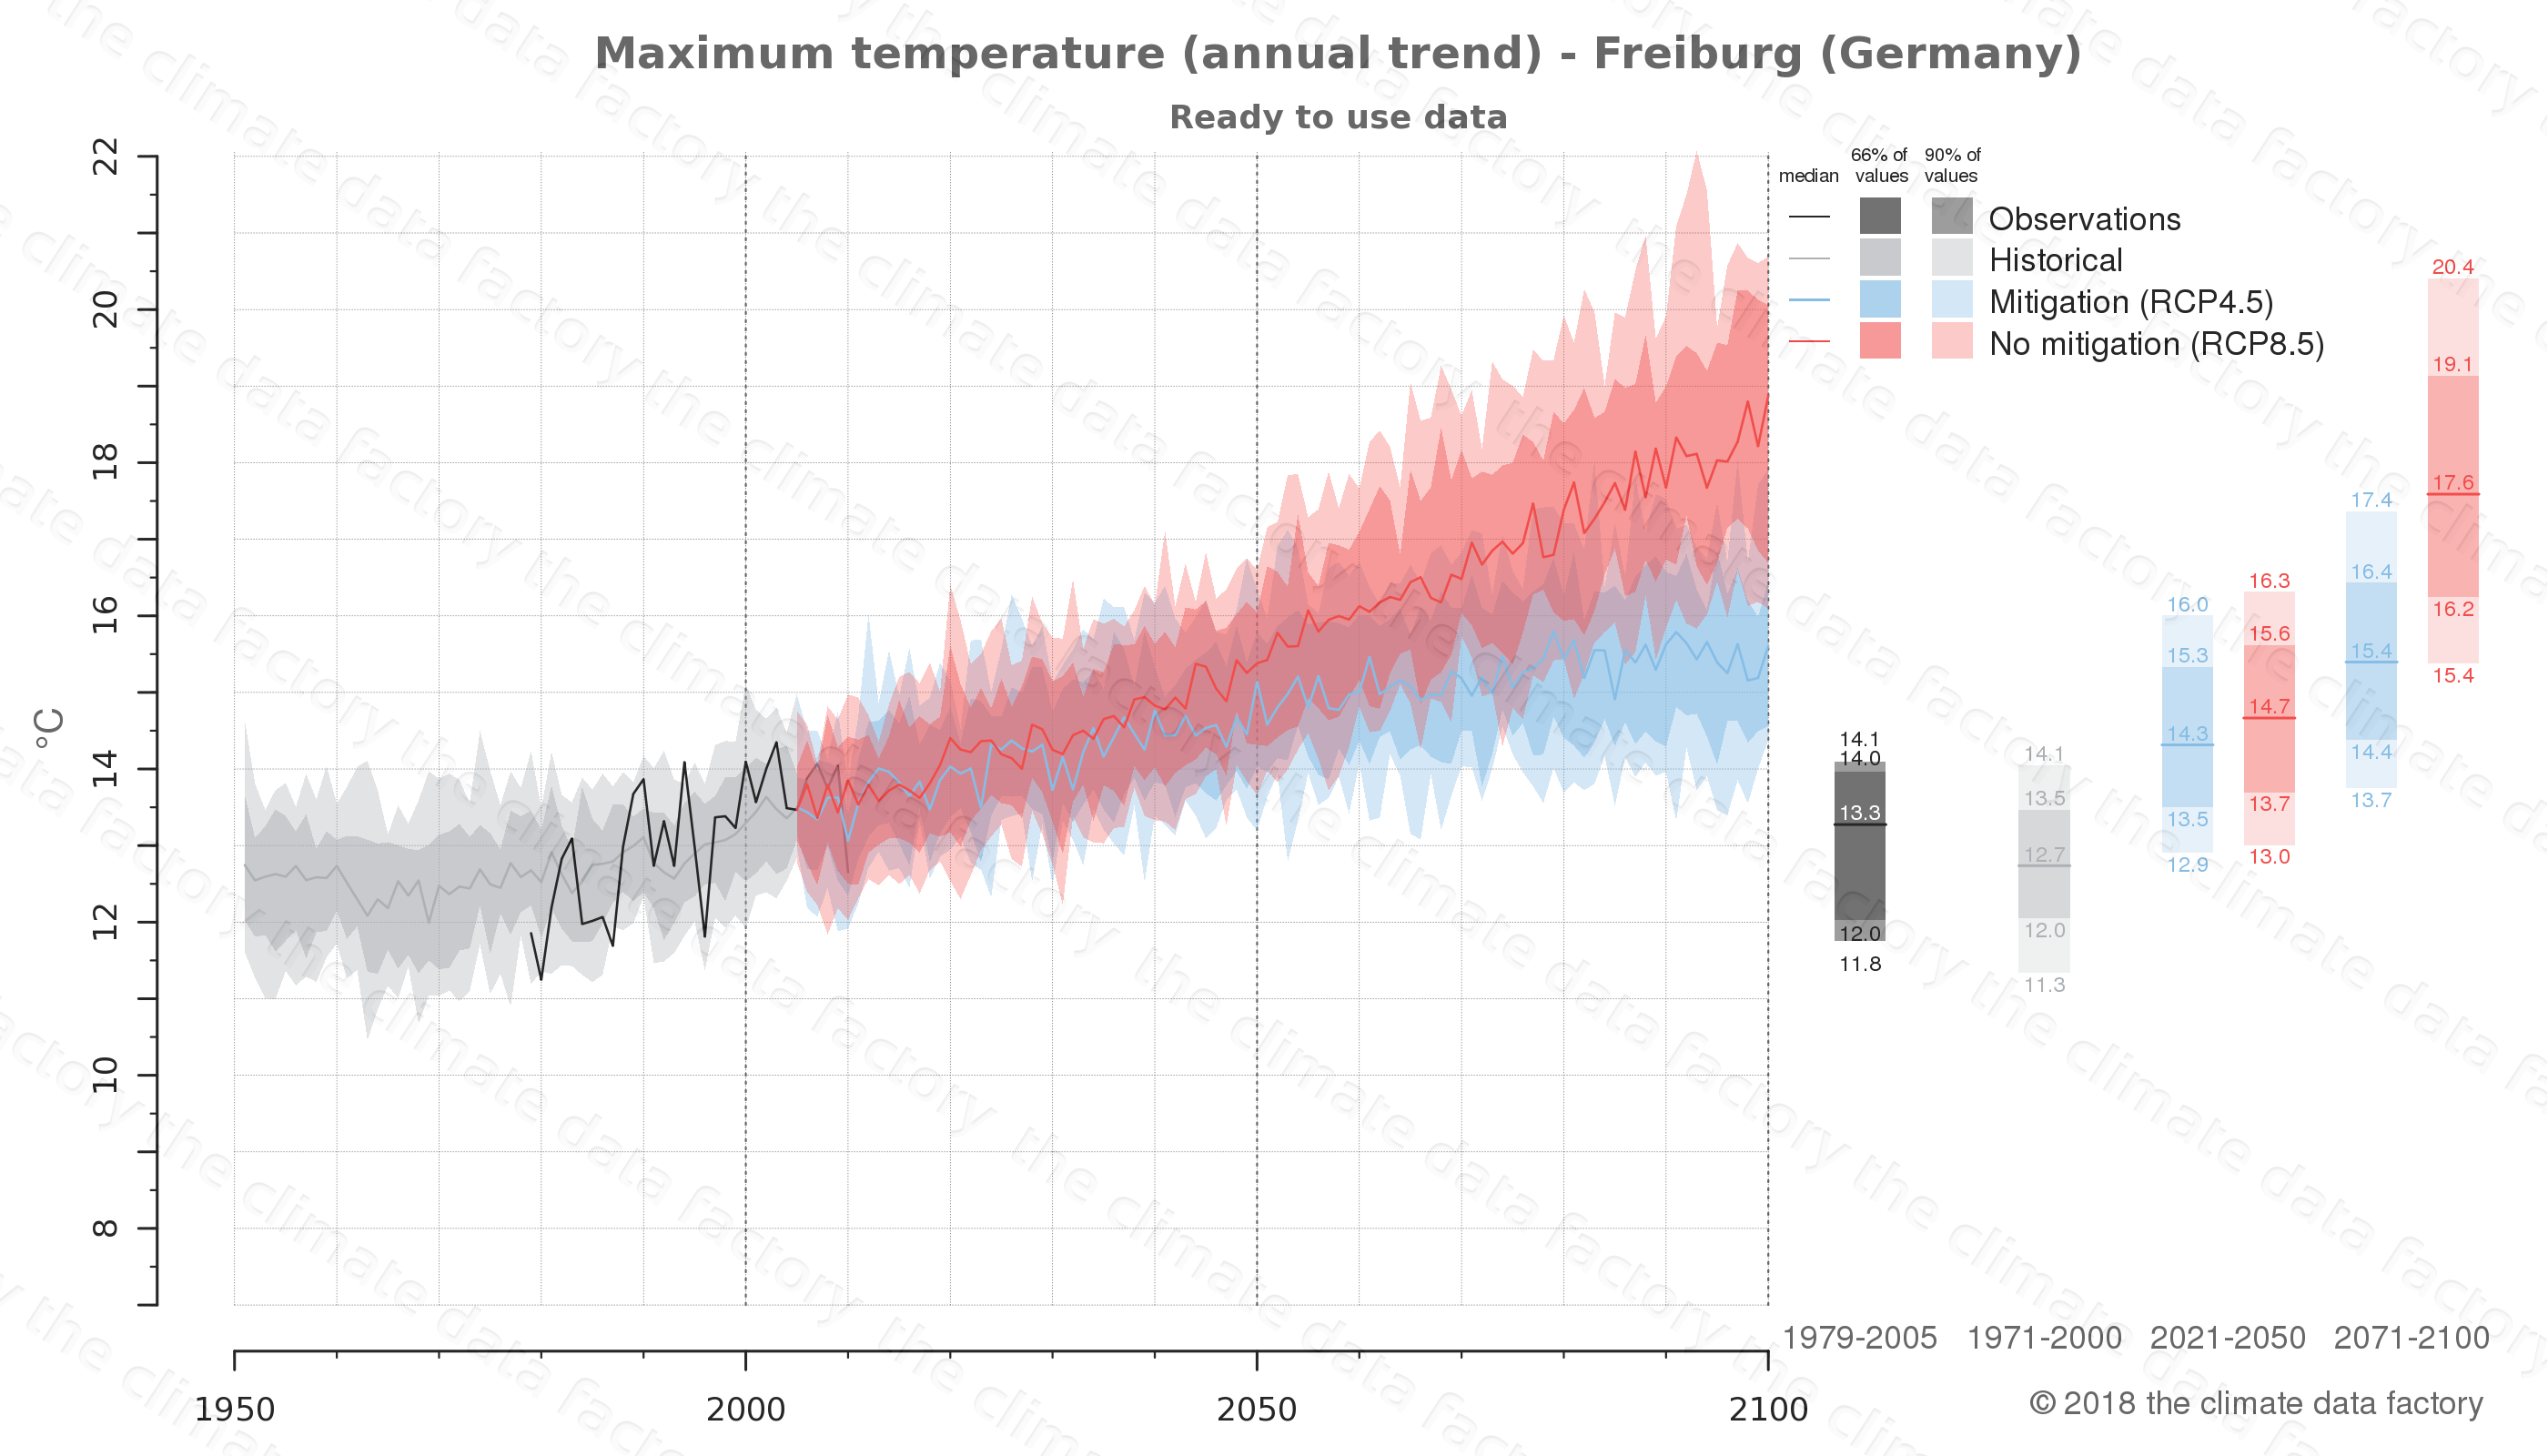 climate change data policy adaptation climate graph city data maximum-temperature freiburg germany